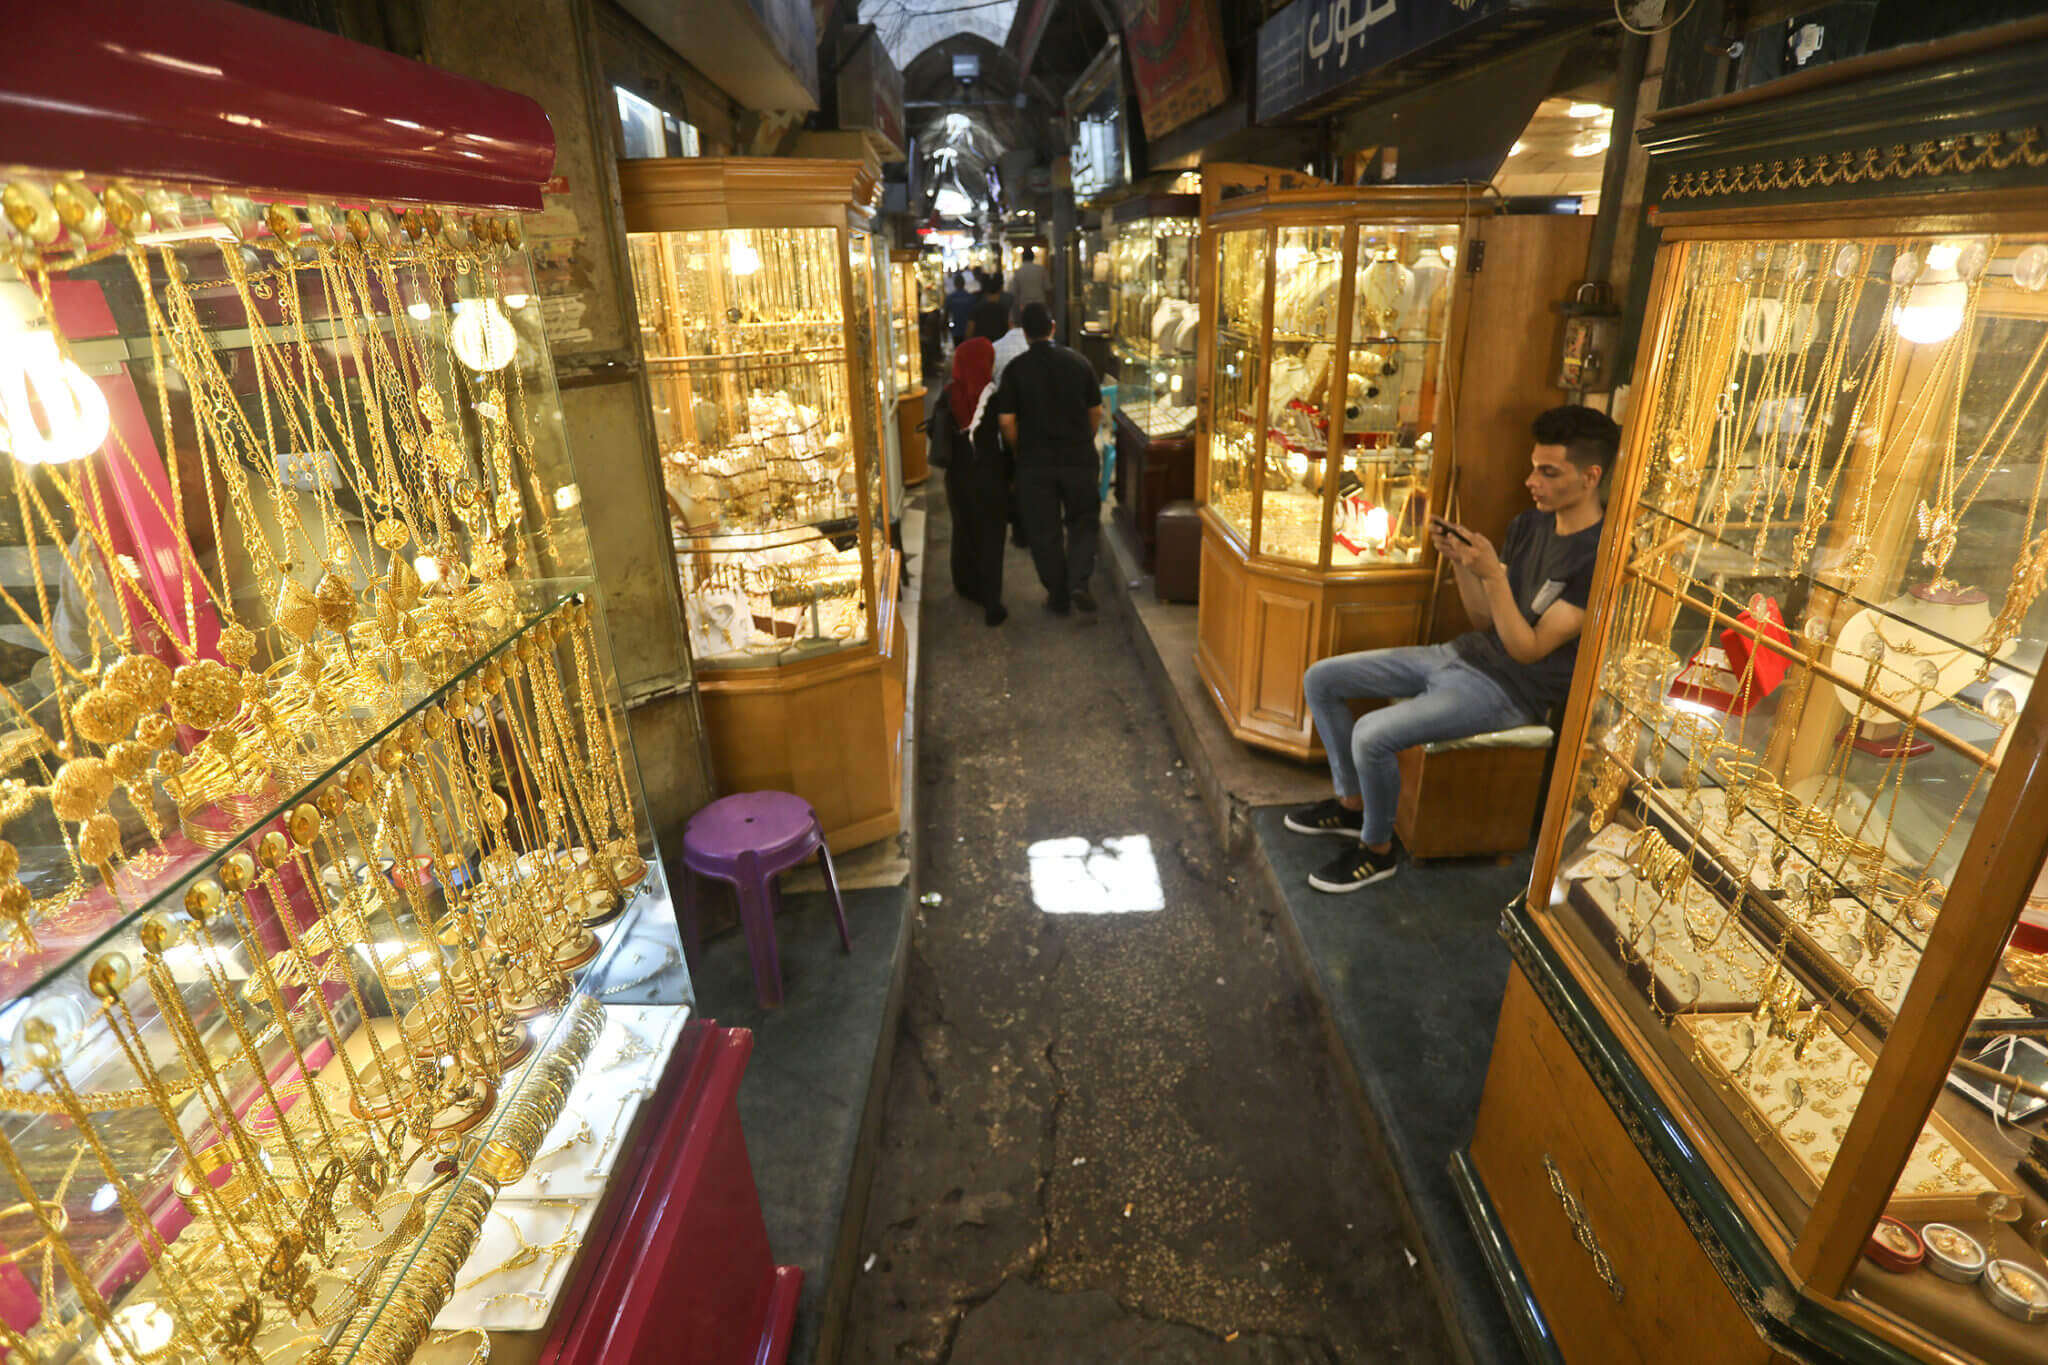 The gold market is all that remains of what was once a large covered market filled with tradesman specializing in different crafts.